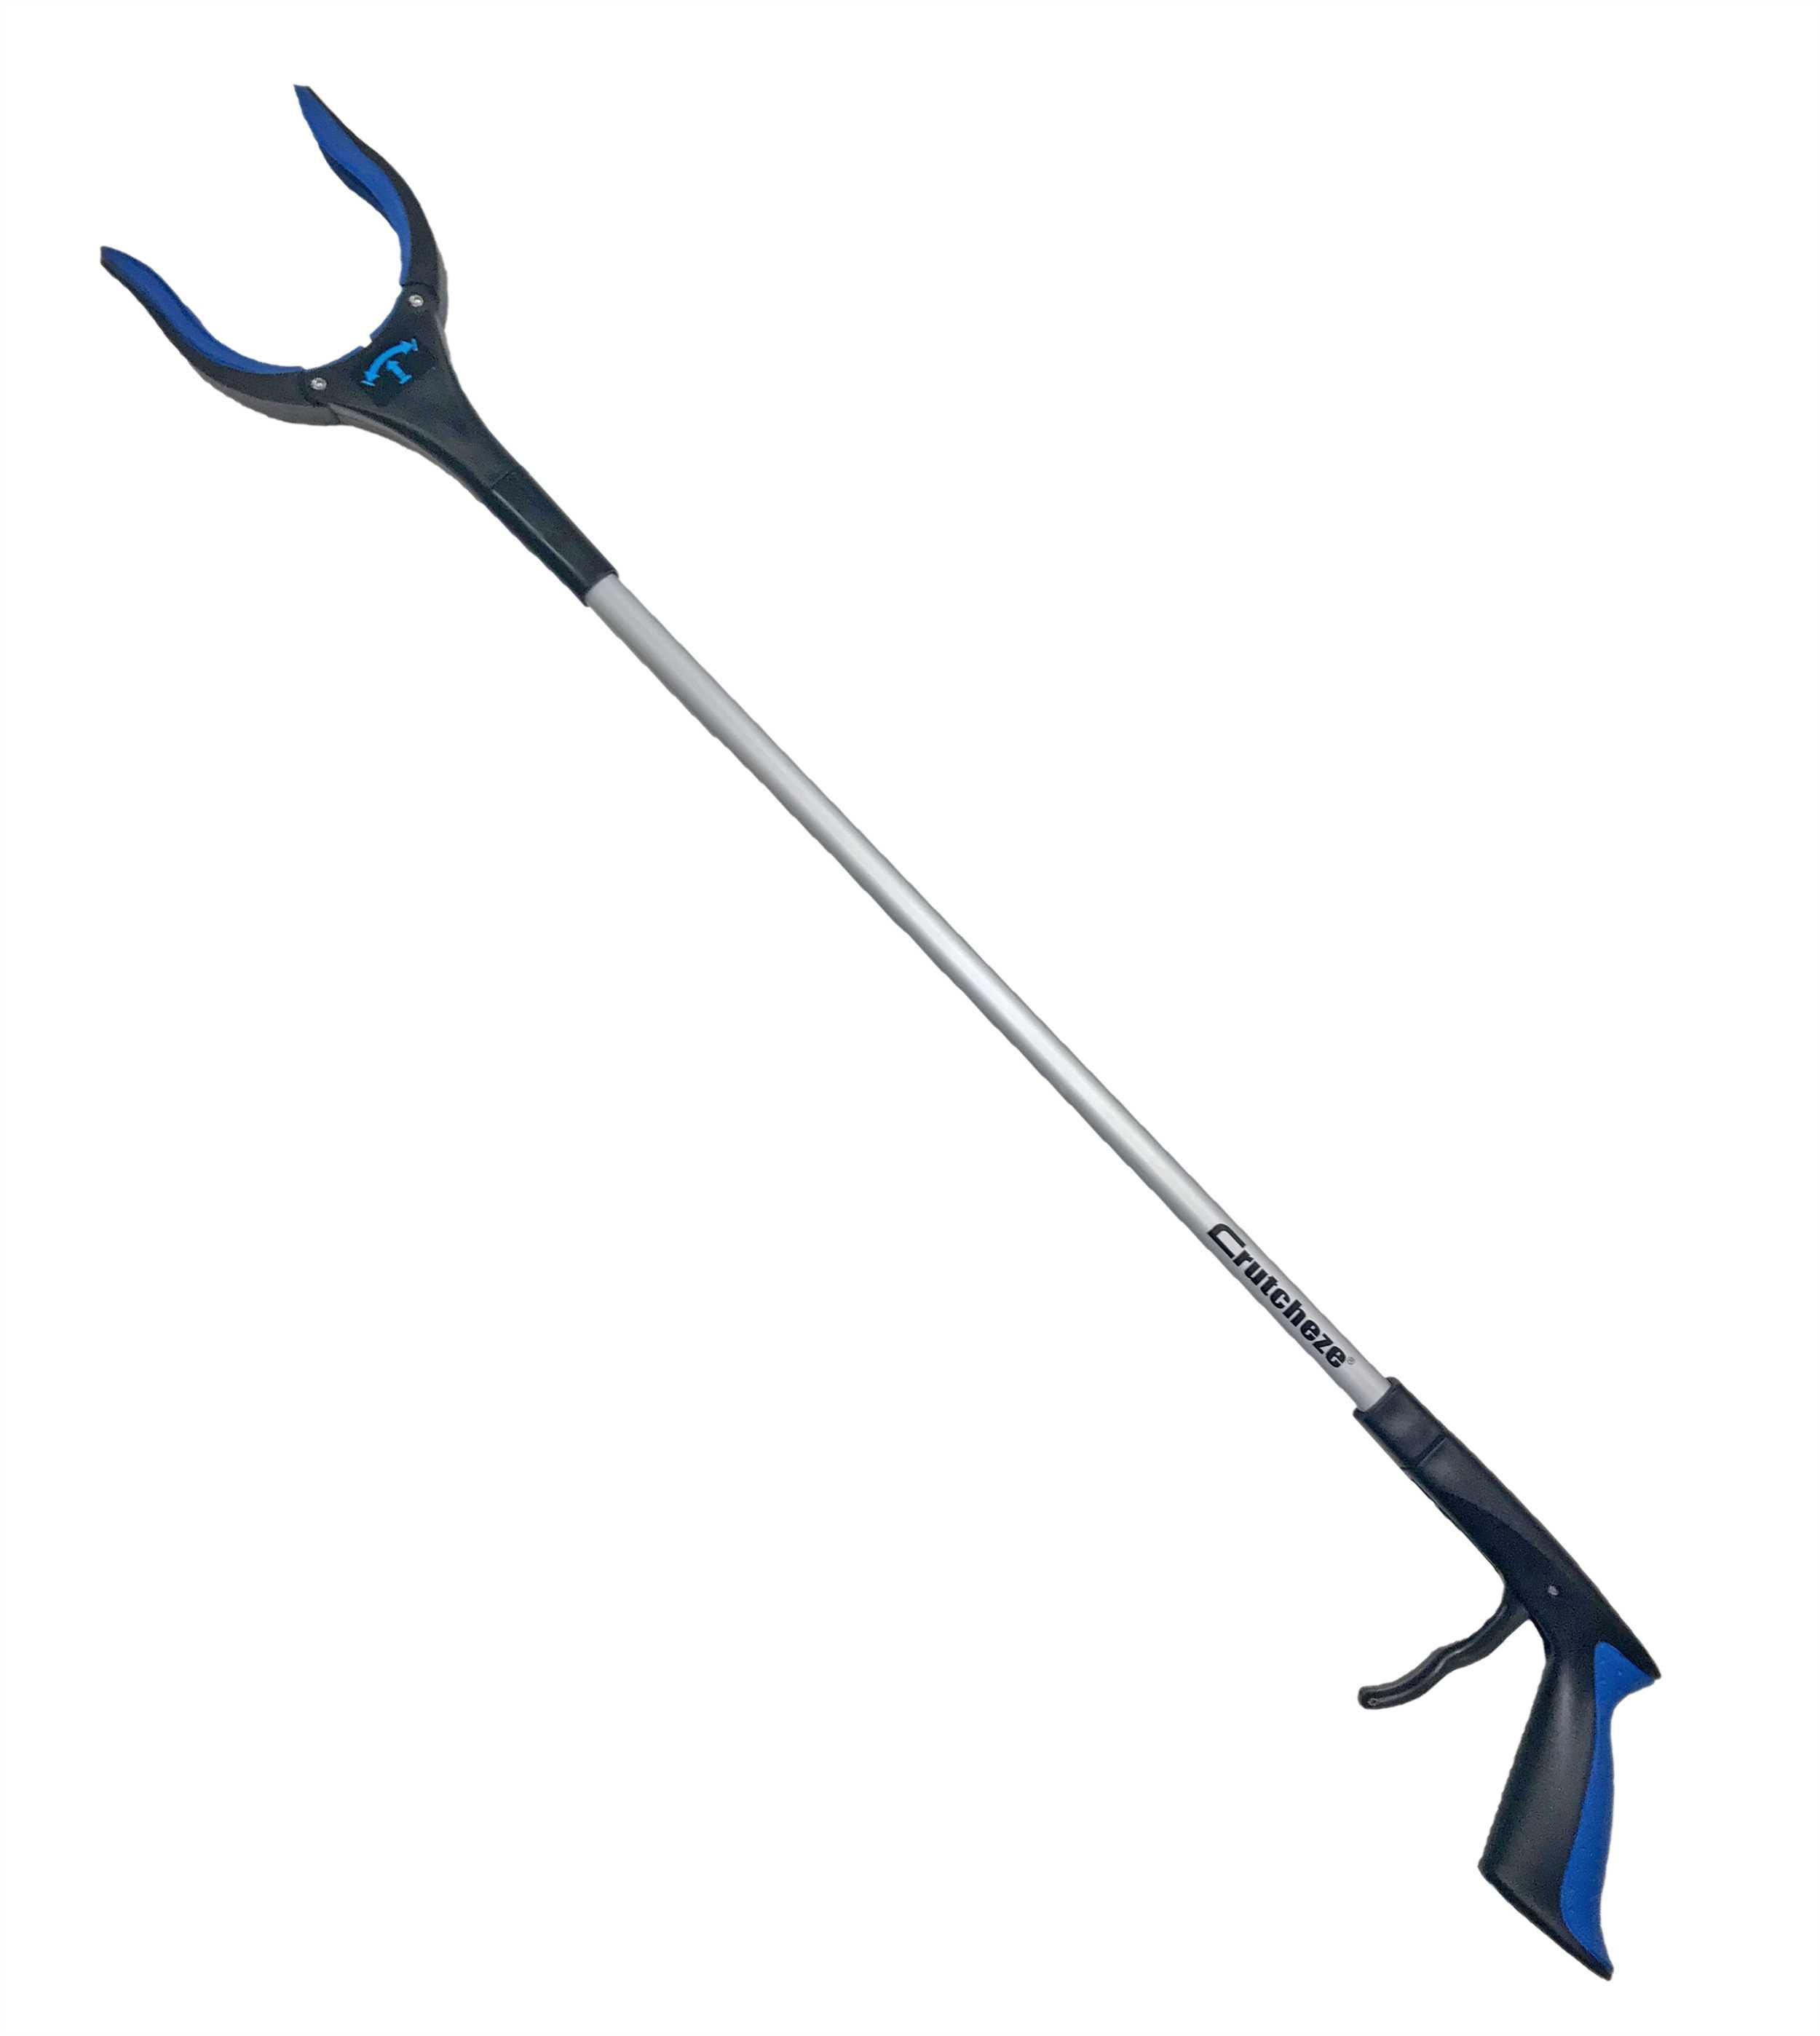 "CRUTCHEZE 32"" REACHER GRABBER - ROYAL BLUE"